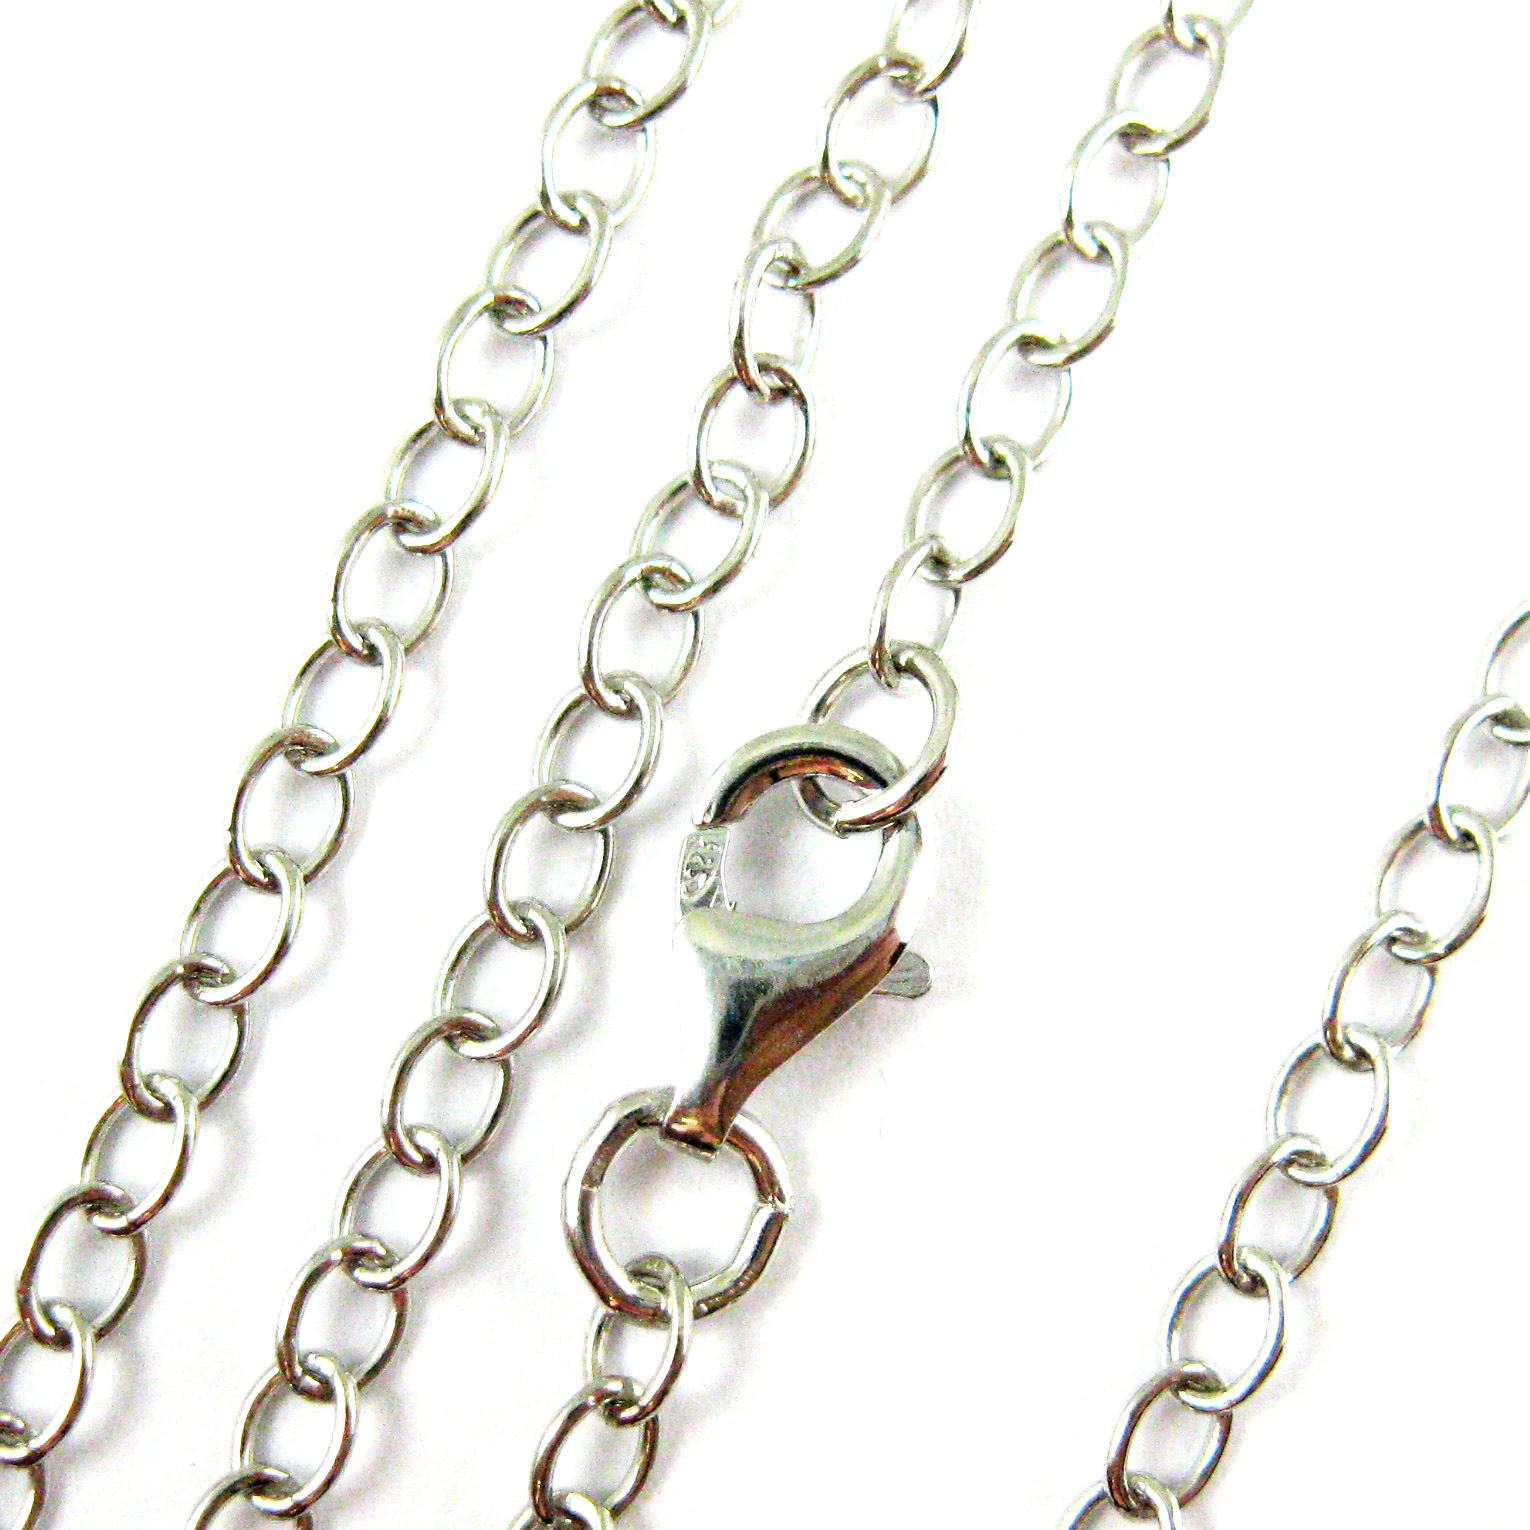 Rhodium Plated Over Of Sterling Silver Chain Necklace – Rhodium Bracelet,  Anklet – 4Mm Cable Chain Necklace – 4Mm Strong Cable Chain  All Sizes Pertaining To Most Popular Classic Cable Chain Necklaces (View 22 of 25)